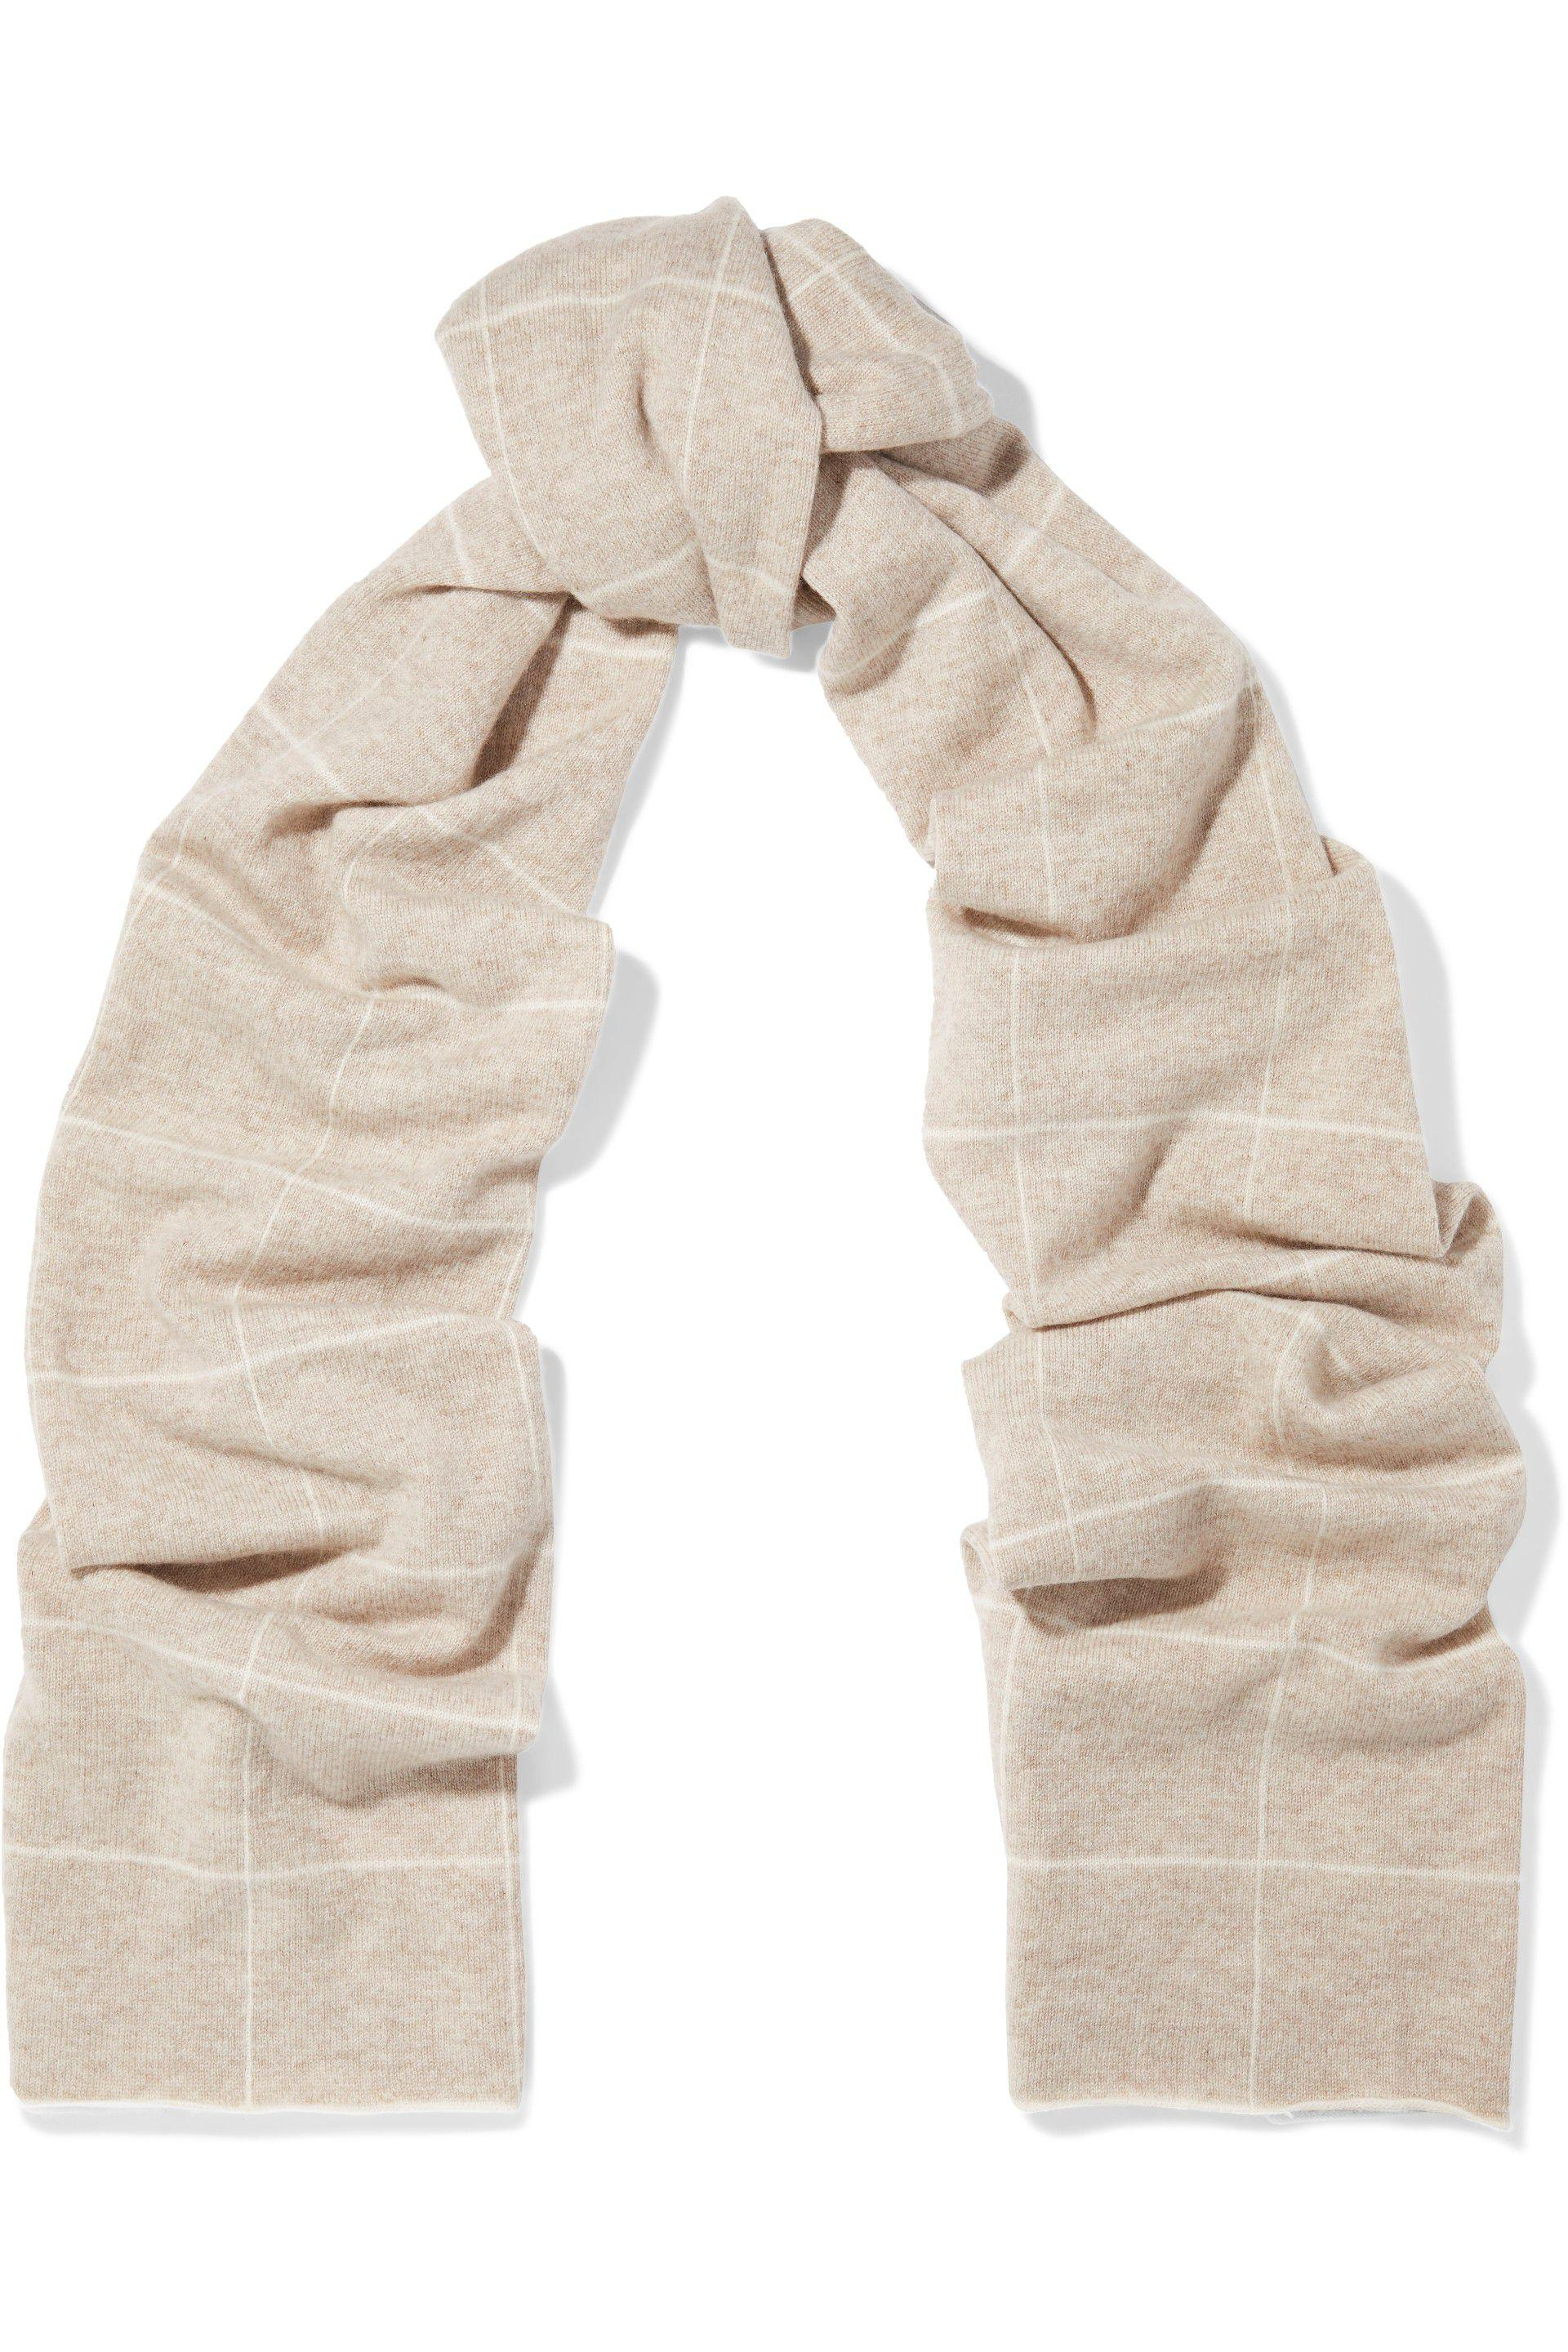 5fc7c0e2534a6 Lyst - Madeleine Thompson Woman Checked Wool And Cashmere-blend ...